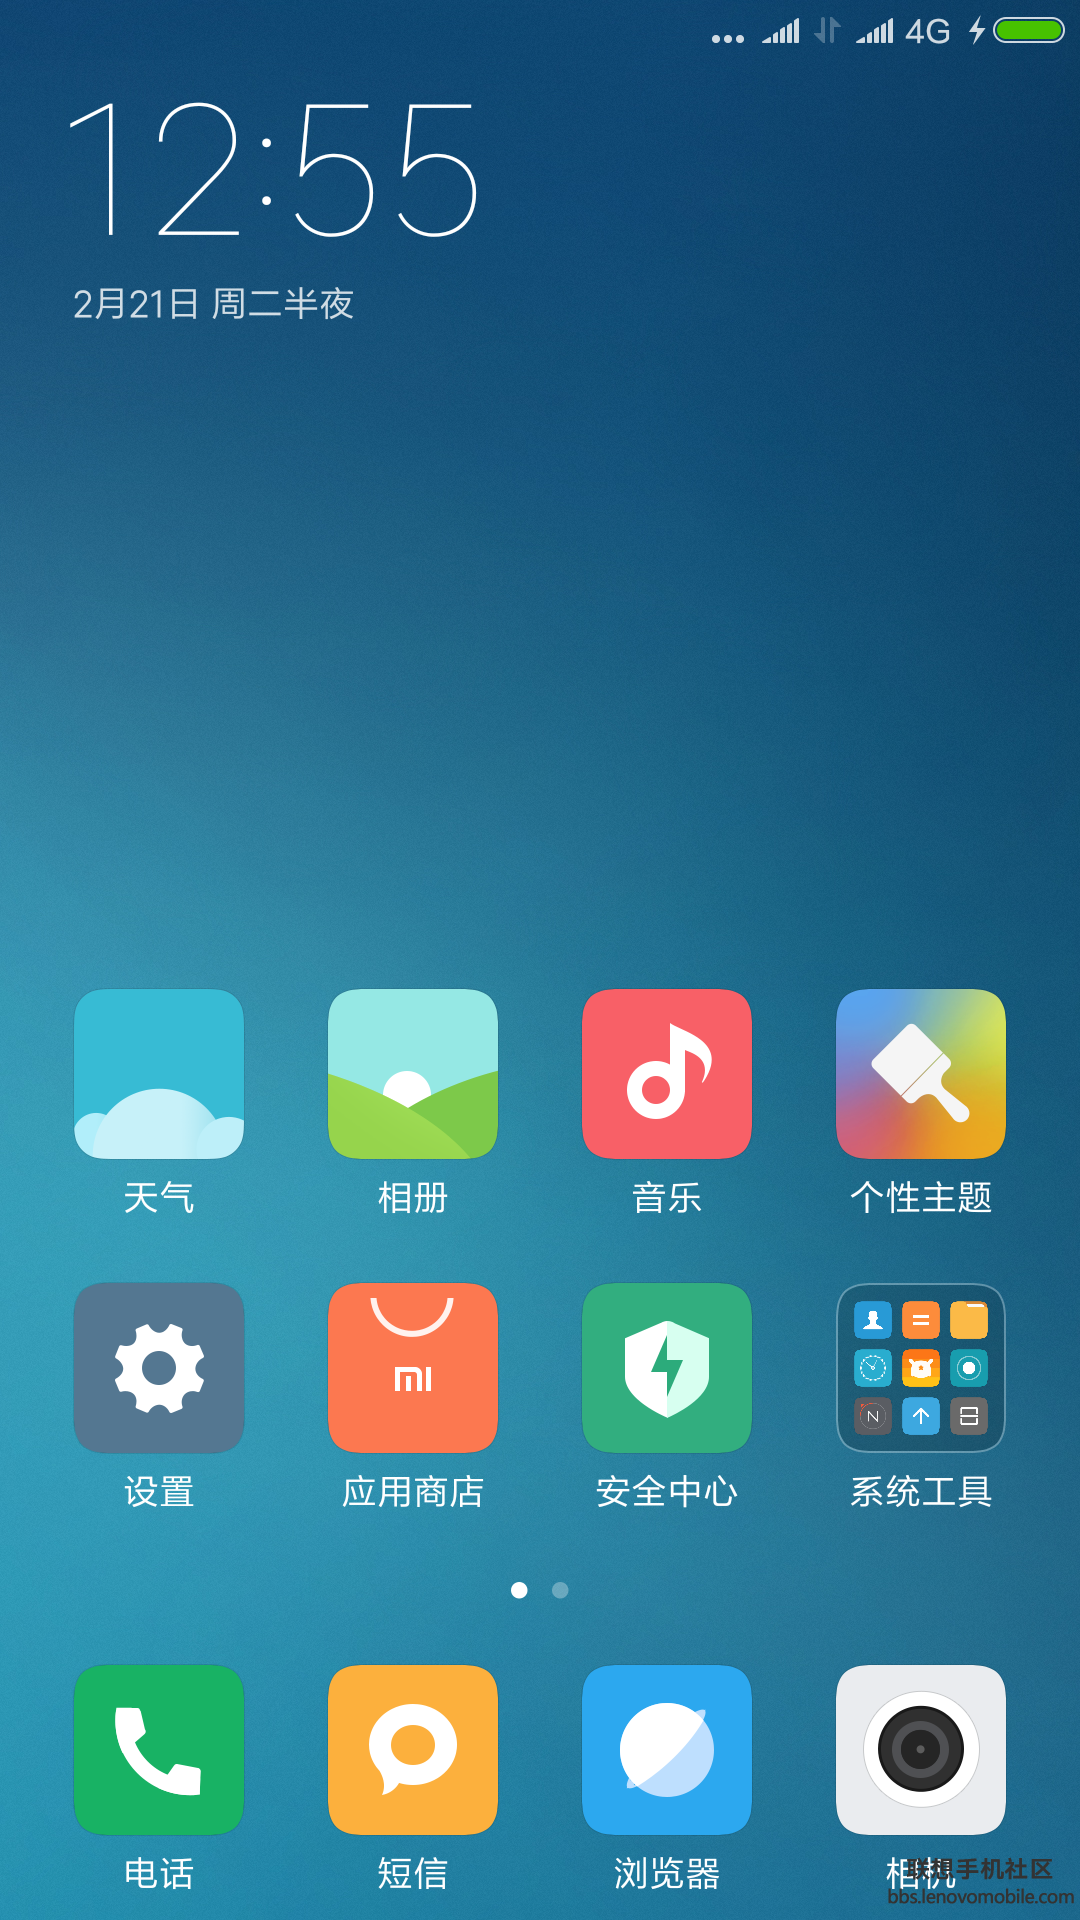 Screenshot_2017-02-21-00-55-29-703_com.miui.home.png